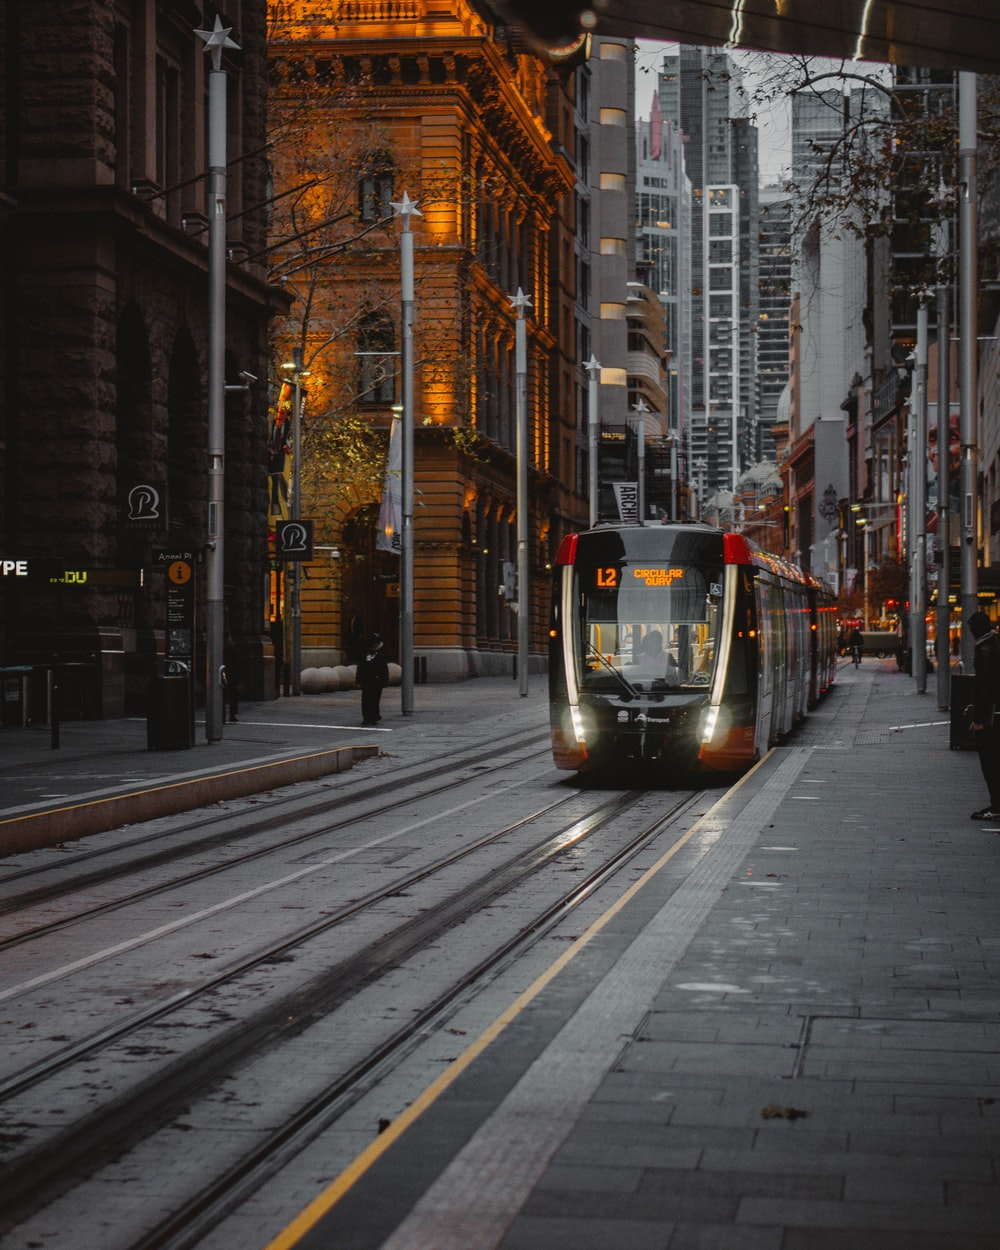 red and black tram on road between high rise buildings during daytime